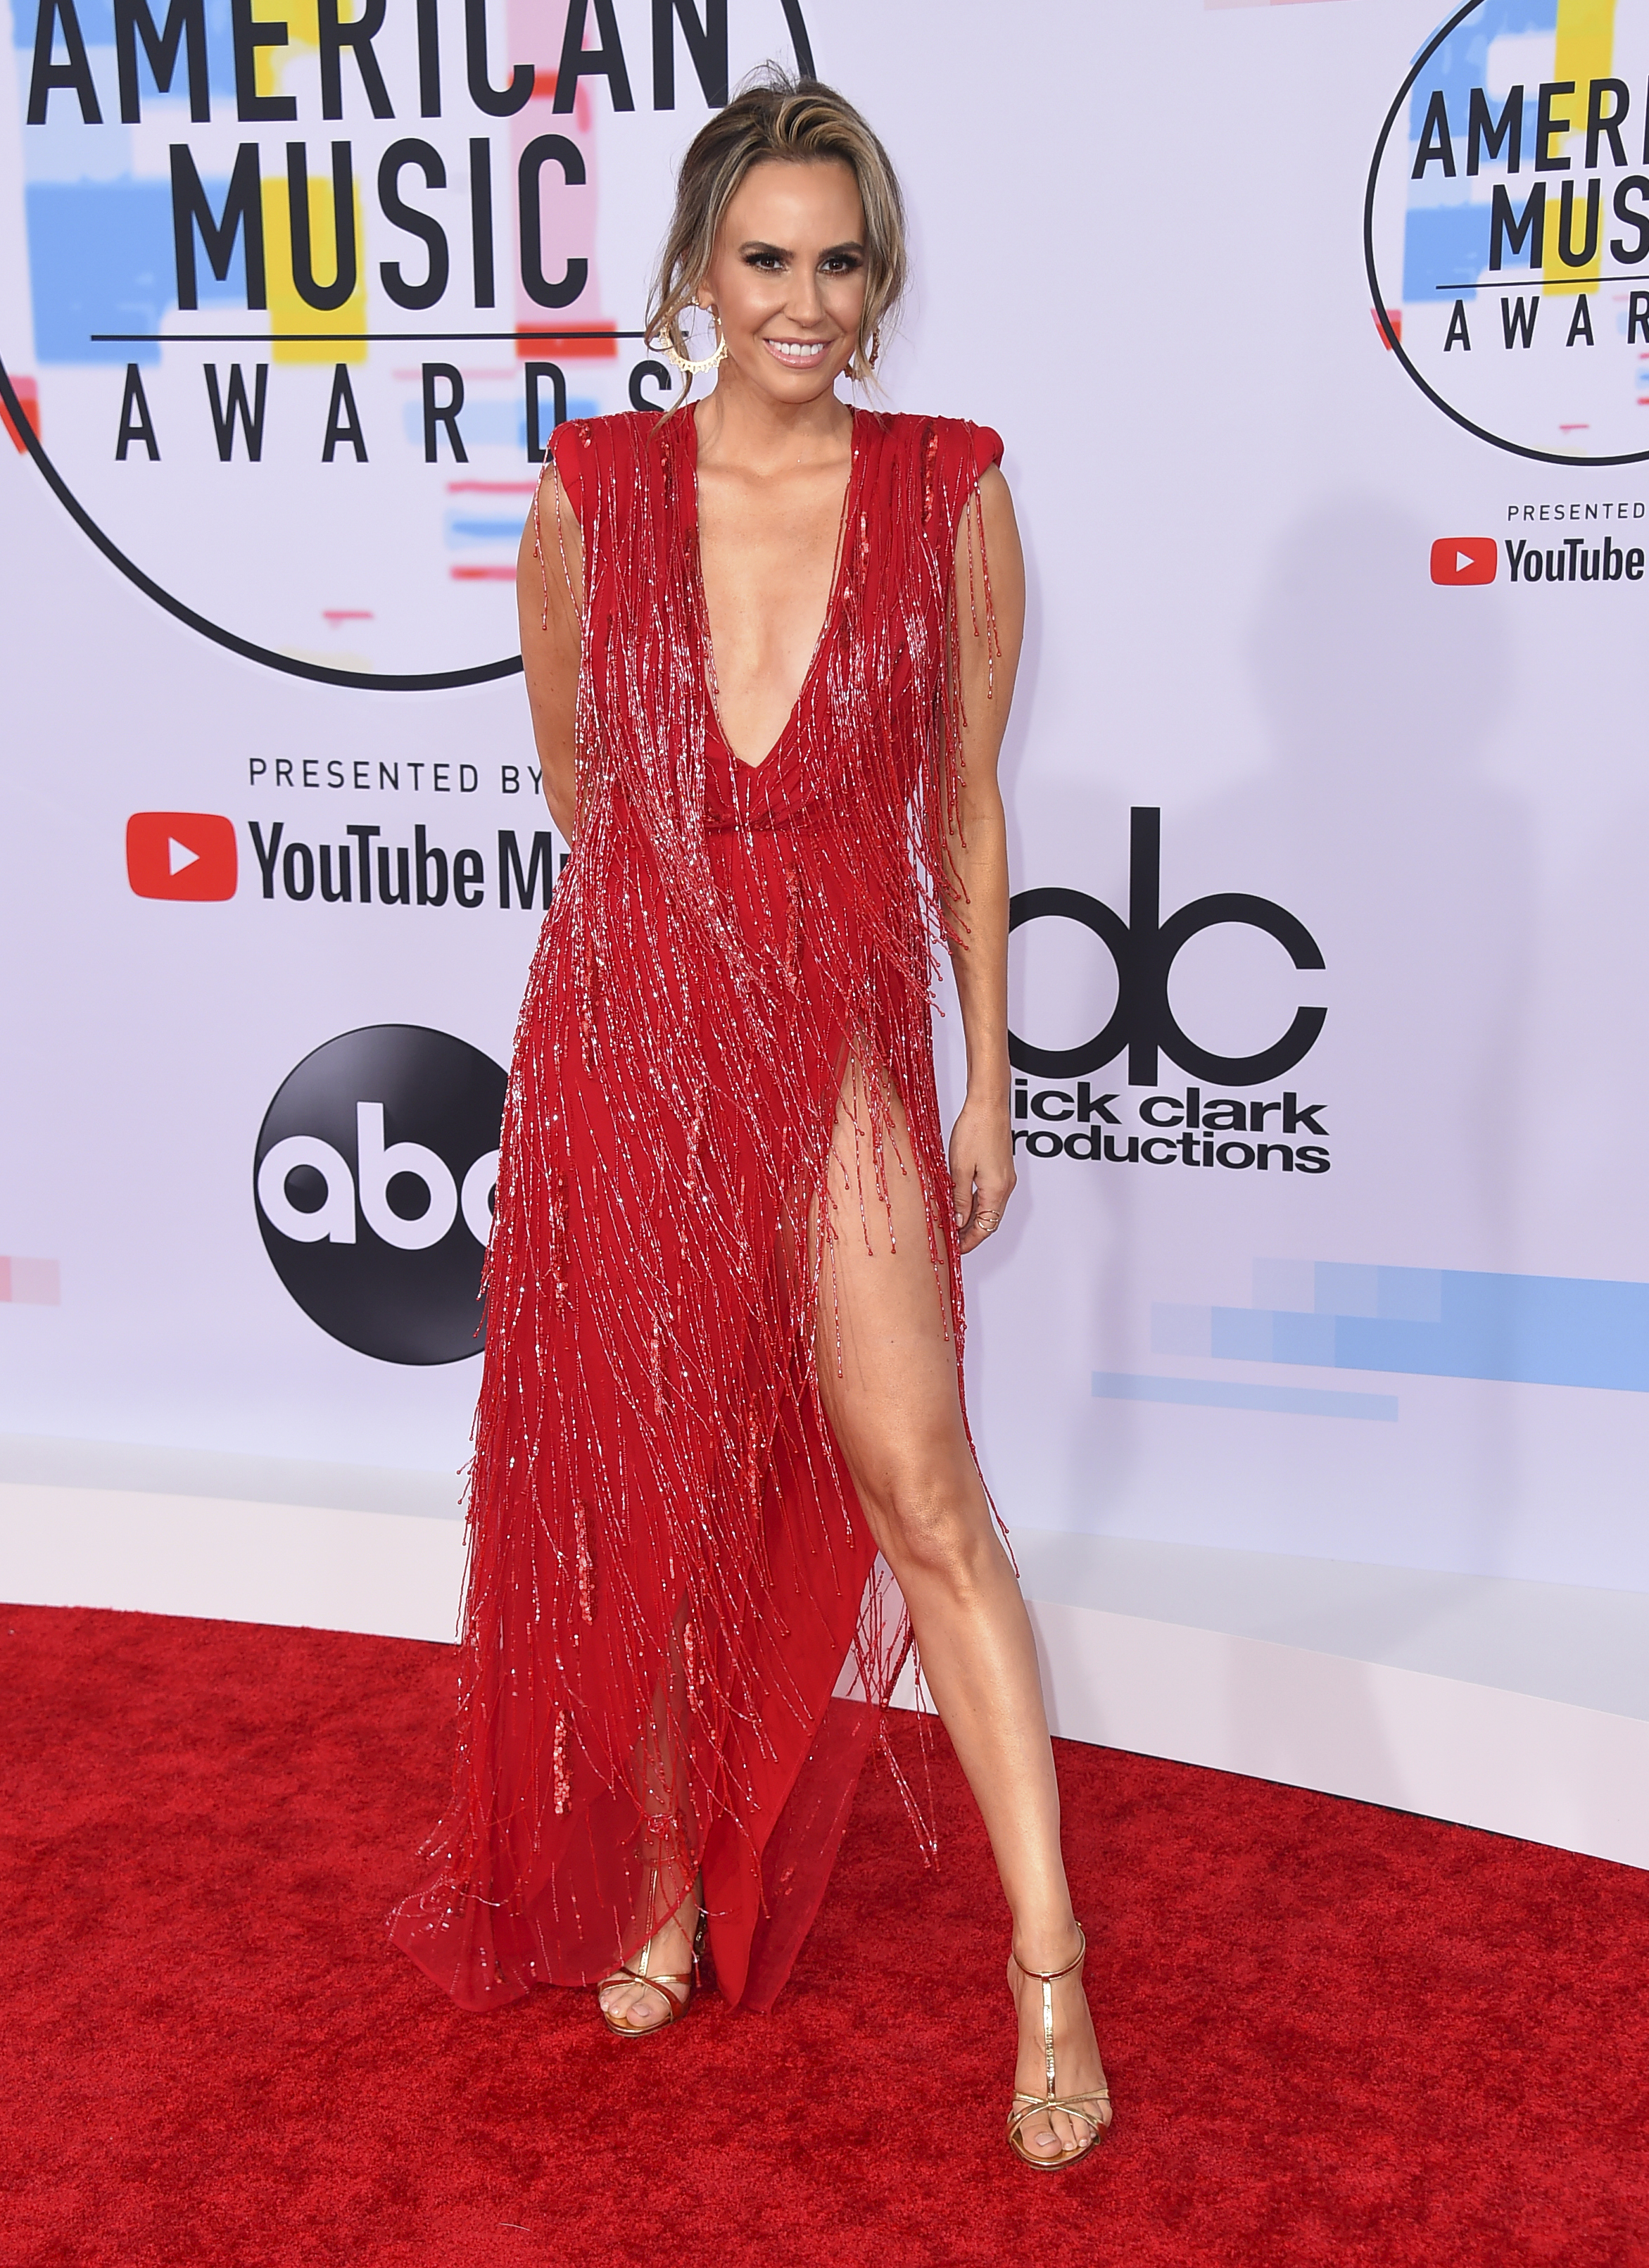 "<div class=""meta image-caption""><div class=""origin-logo origin-image ap""><span>AP</span></div><span class=""caption-text"">Keltie Knight arrives at the American Music Awards on Tuesday, Oct. 9, 2018, at the Microsoft Theater in Los Angeles. (Jordan Strauss/Invision/AP)</span></div>"